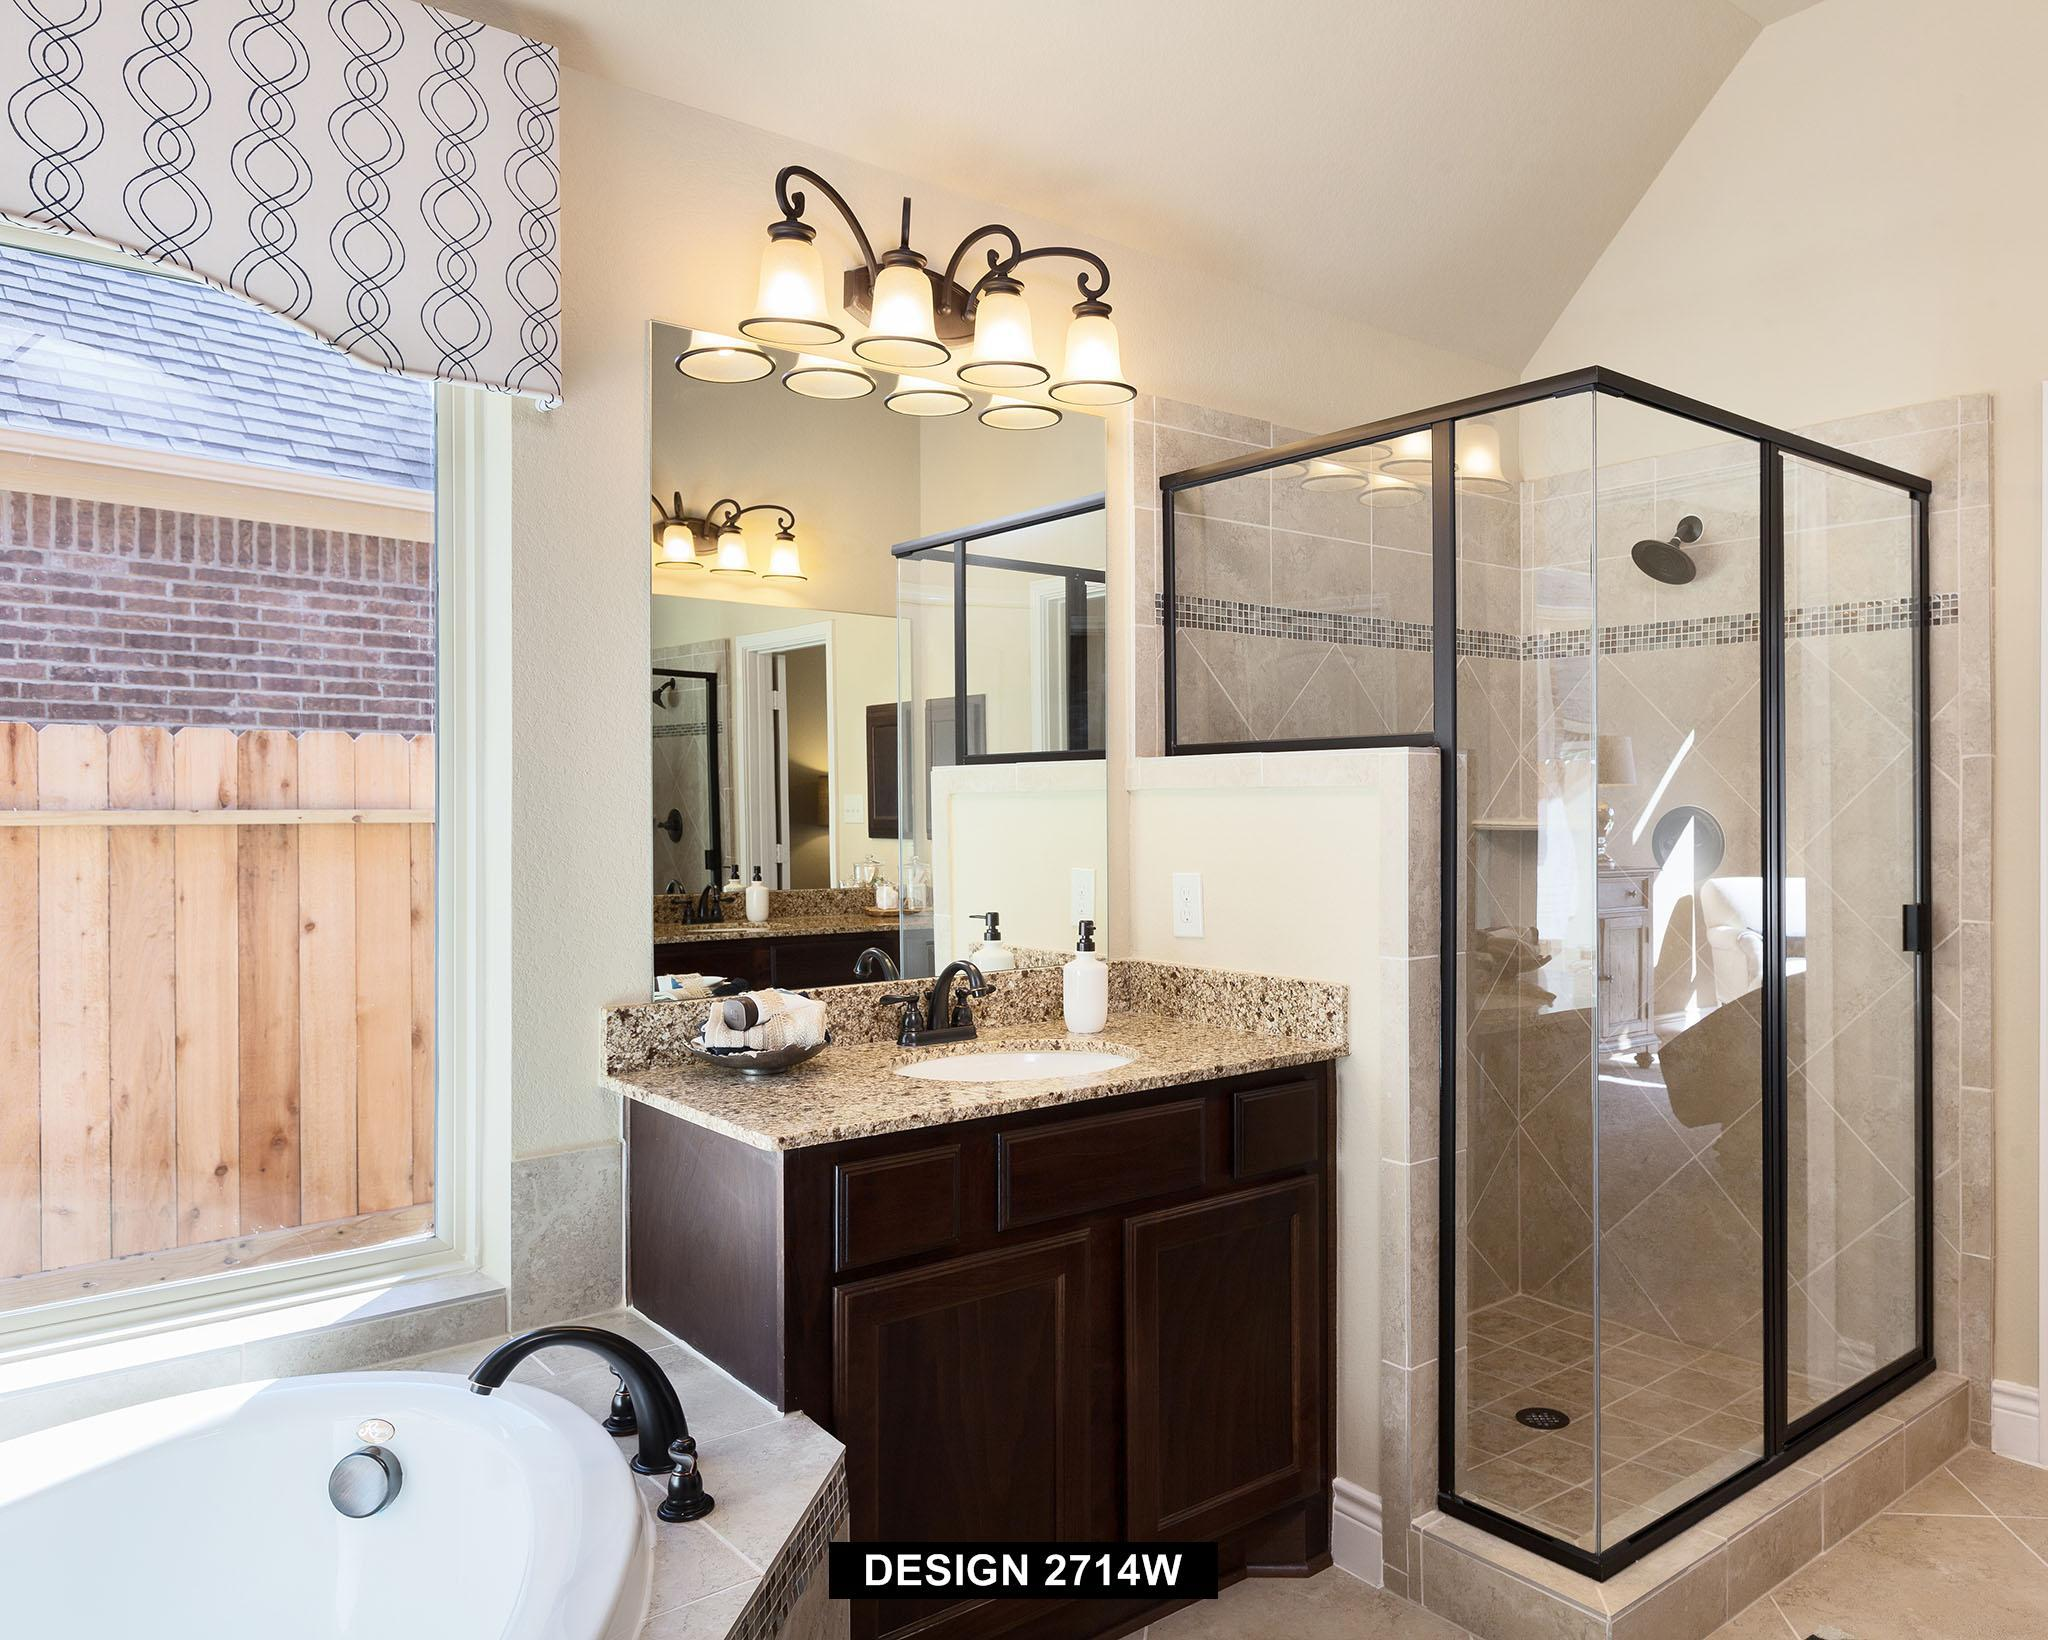 Bathroom-in-2714W-at-Kallison Ranch 50'-in-San Antonio